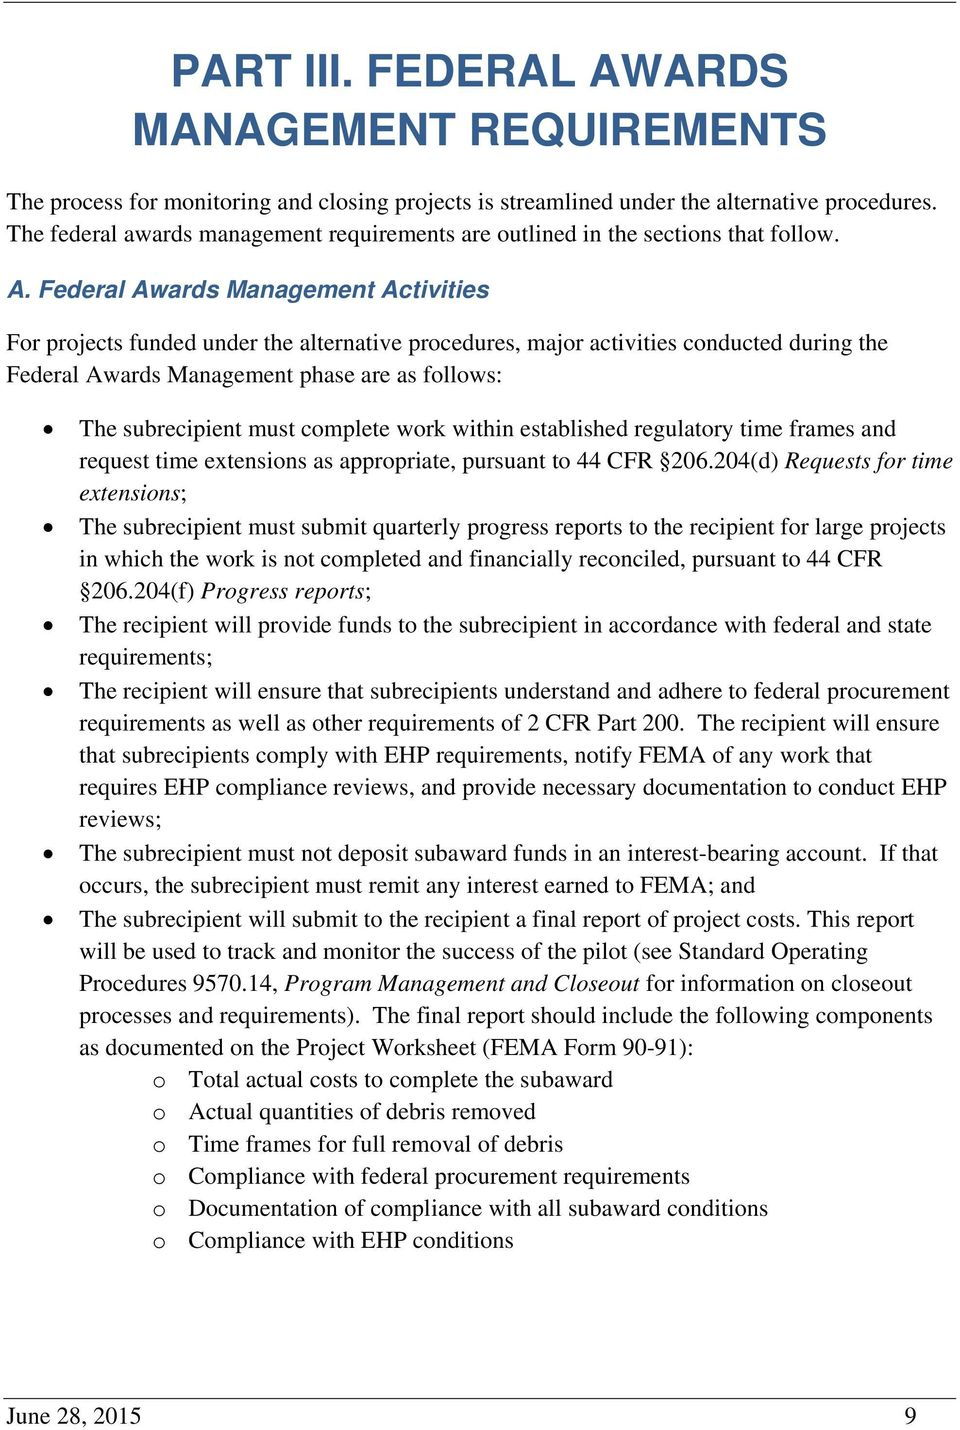 Federal Awards Management Activities For projects funded under the alternative procedures, major activities conducted during the Federal Awards Management phase are as follows: The subrecipient must